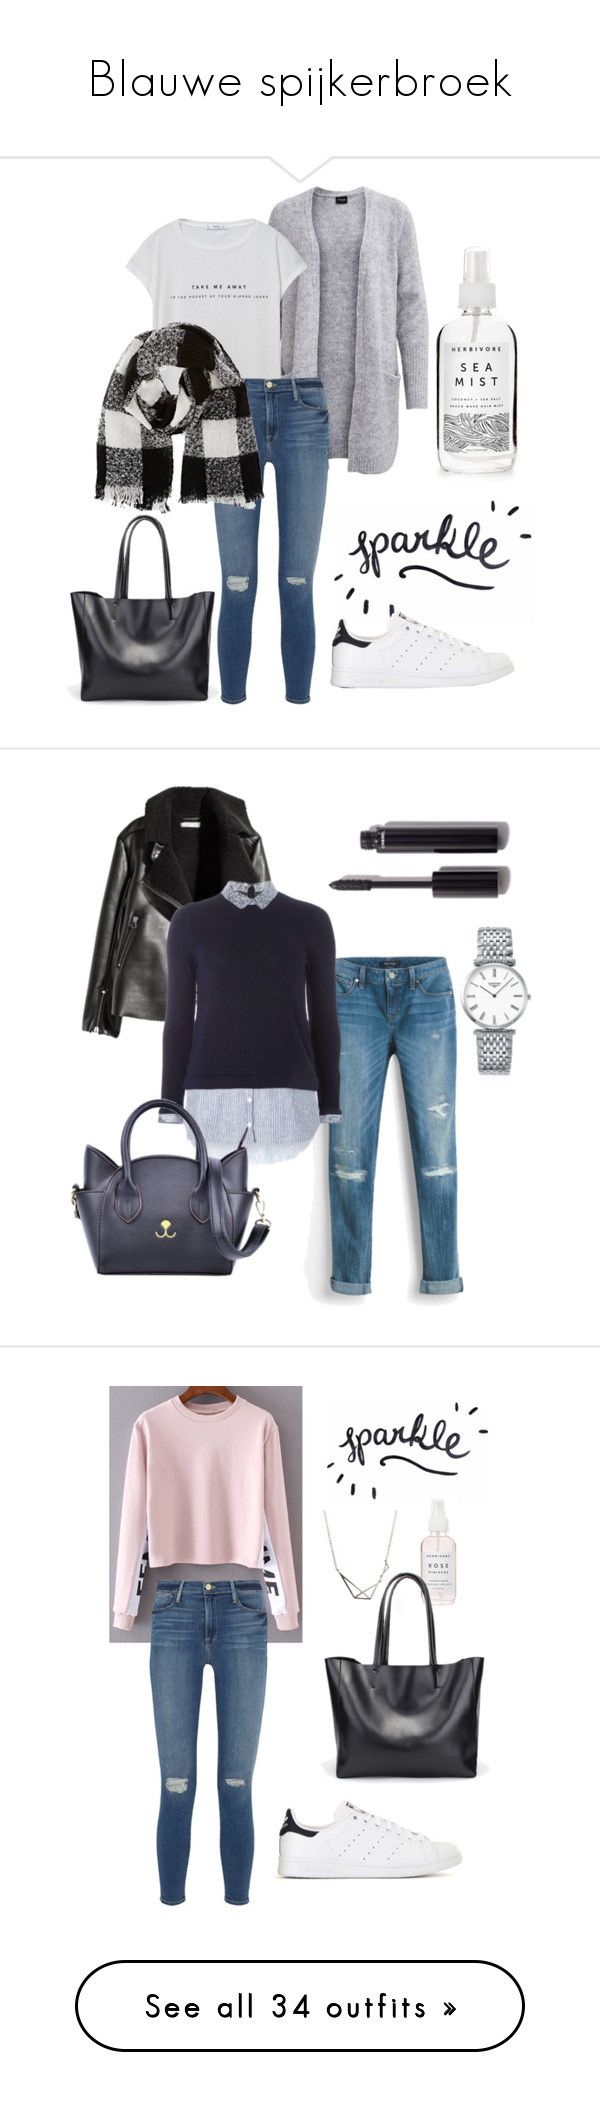 """Blauwe spijkerbroek"" by ghuus15 ❤ liked on Polyvore featuring Herbivore, adidas, MANGO, Frame, Barneys New York, H&M, White House Black Market, Dorothy Perkins, Handle and Chanel"